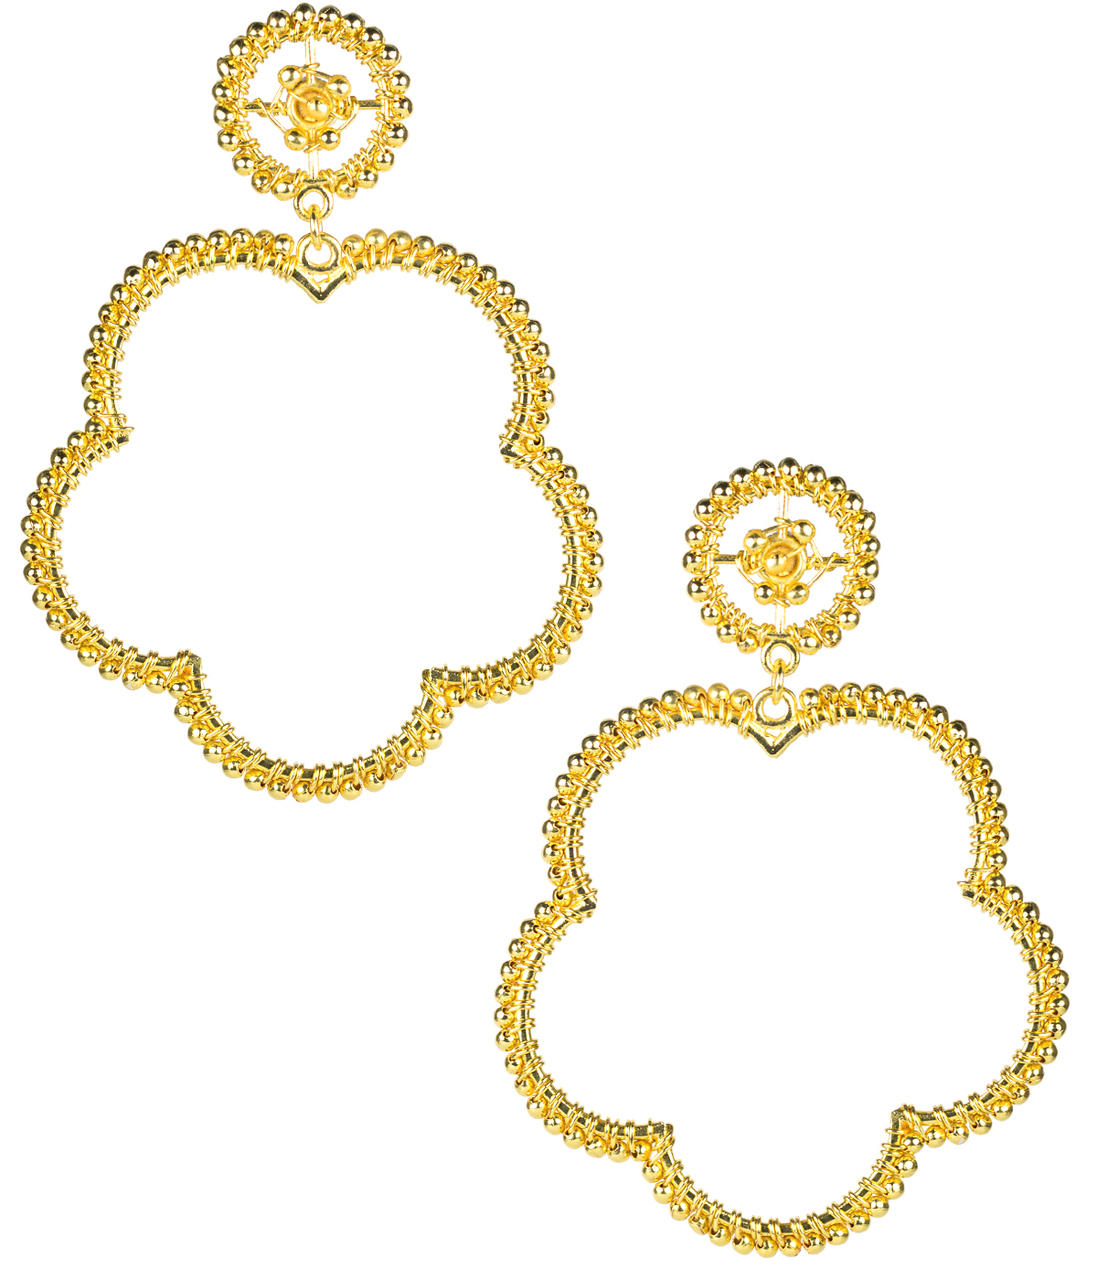 Bobbi Gold Earrings by LISI LERCH